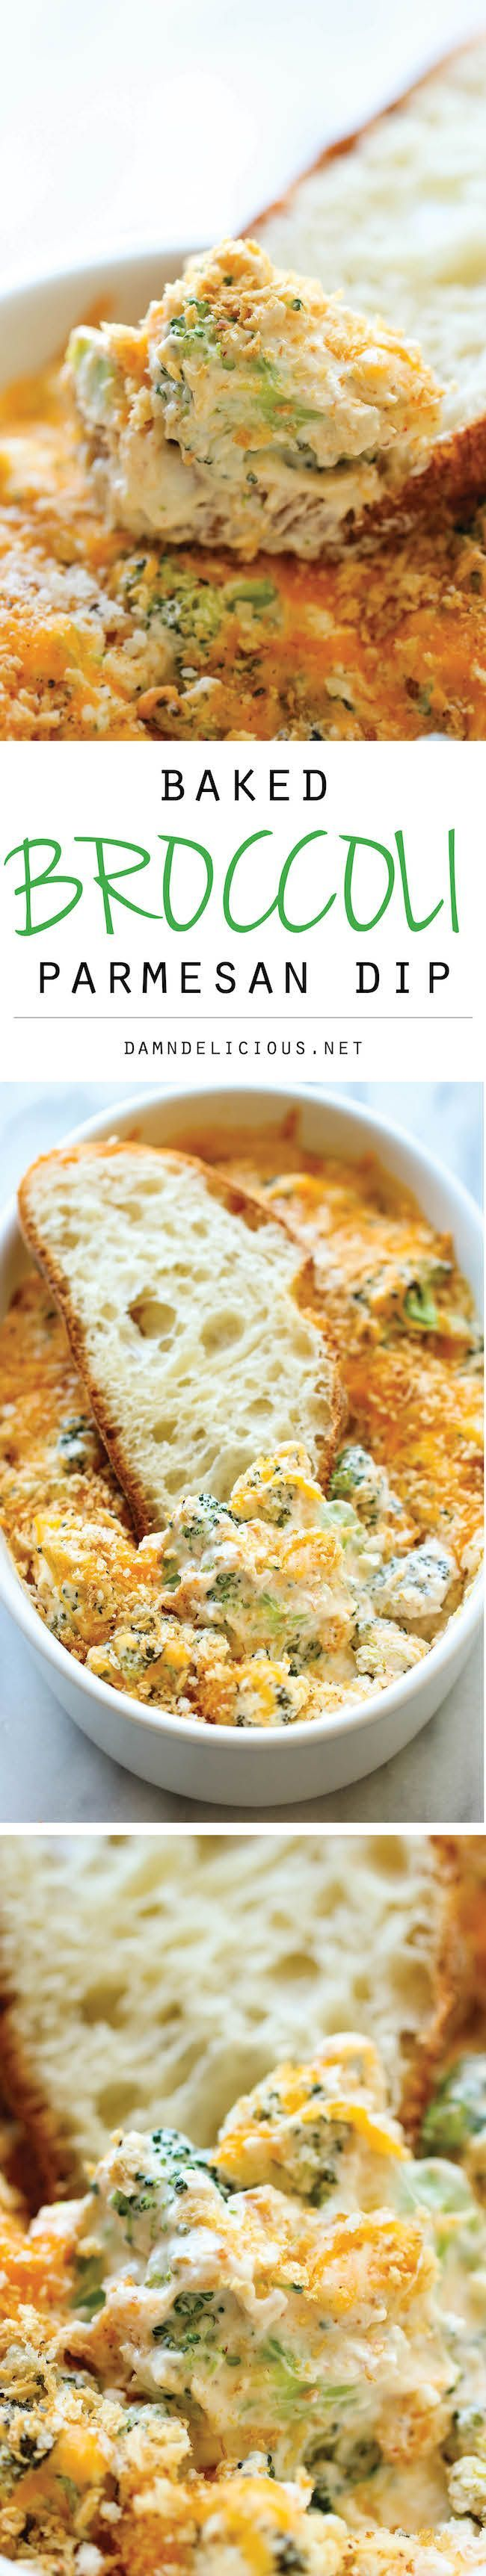 Baked Broccoli Parmesan Dip: A wonderfully hot and cheesy broccoli dip that is sure to be a crowd pleaser – people will be begging you to make more!: